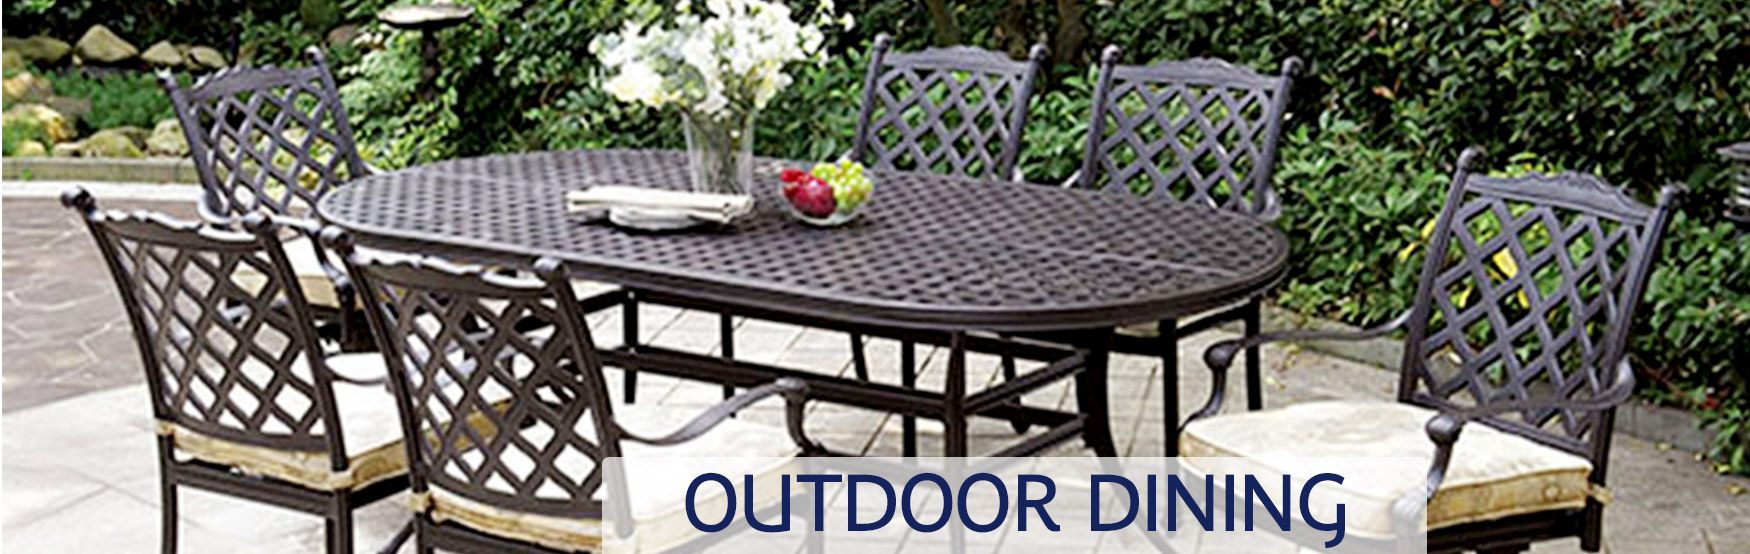 Outdoor Dining Furniture Banner